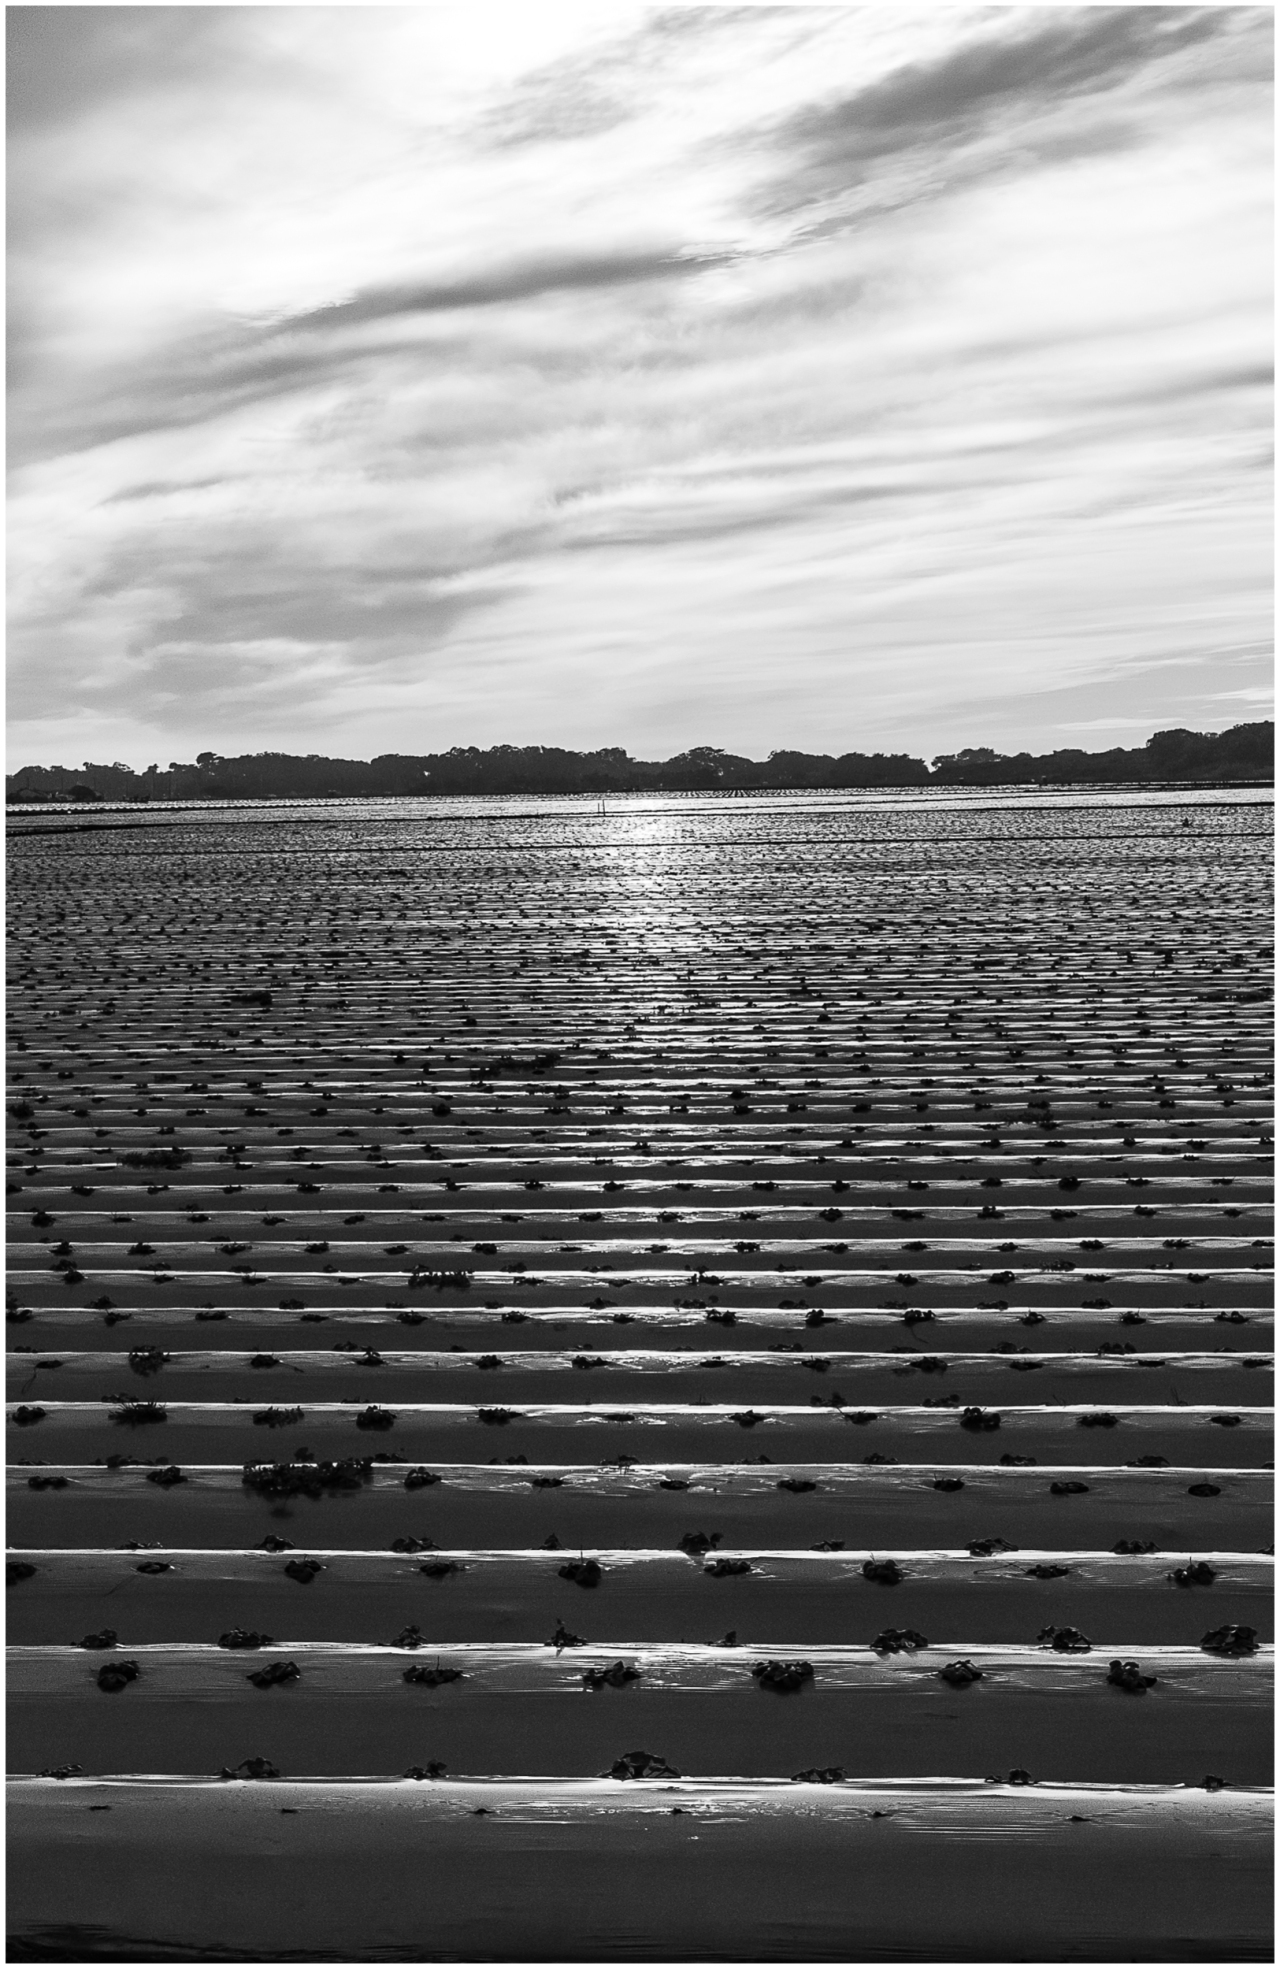 Monochrome Mondays: Field of plastic in the afternoon sun